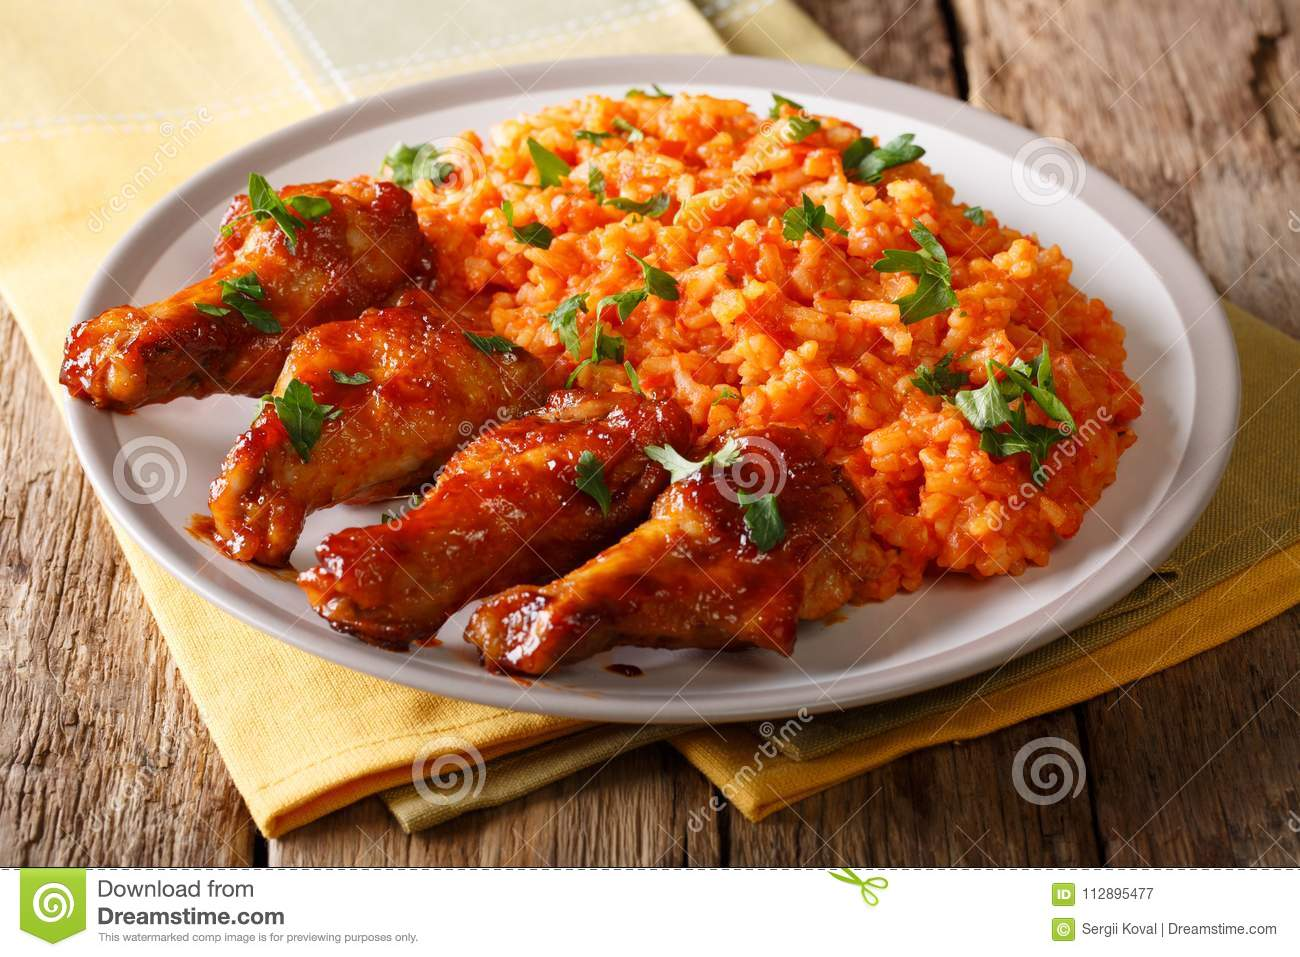 Download Porcion Of African Jollof Rice With Fried Chicken Wings Close-up Stock Image - Image of food, african: 112895477